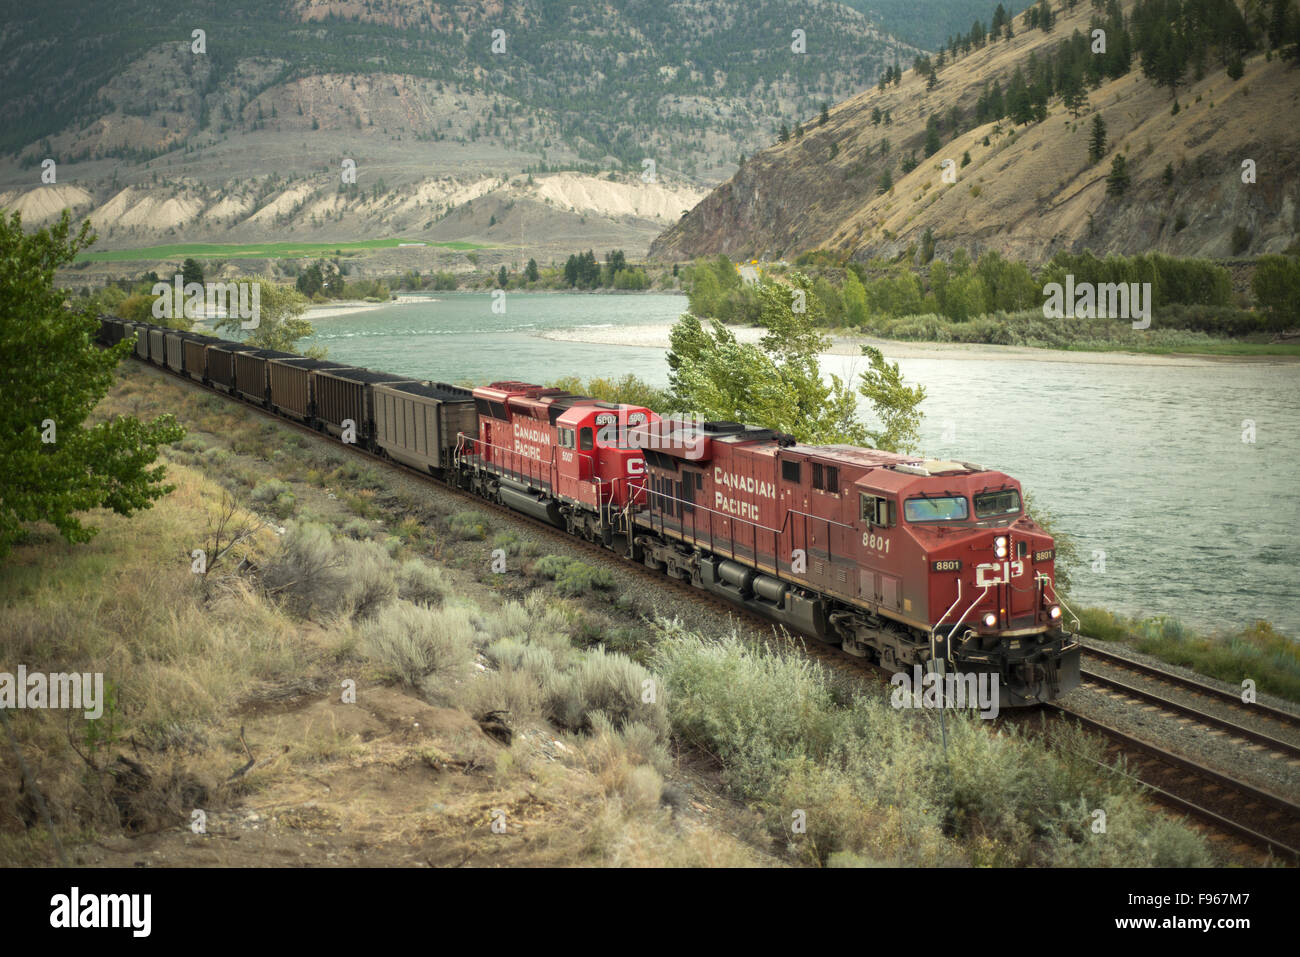 A CP (Canadian Pacific) coal train skirts along the Thompson River, through Spences Bridge, British Columbia, Canada. - Stock Image